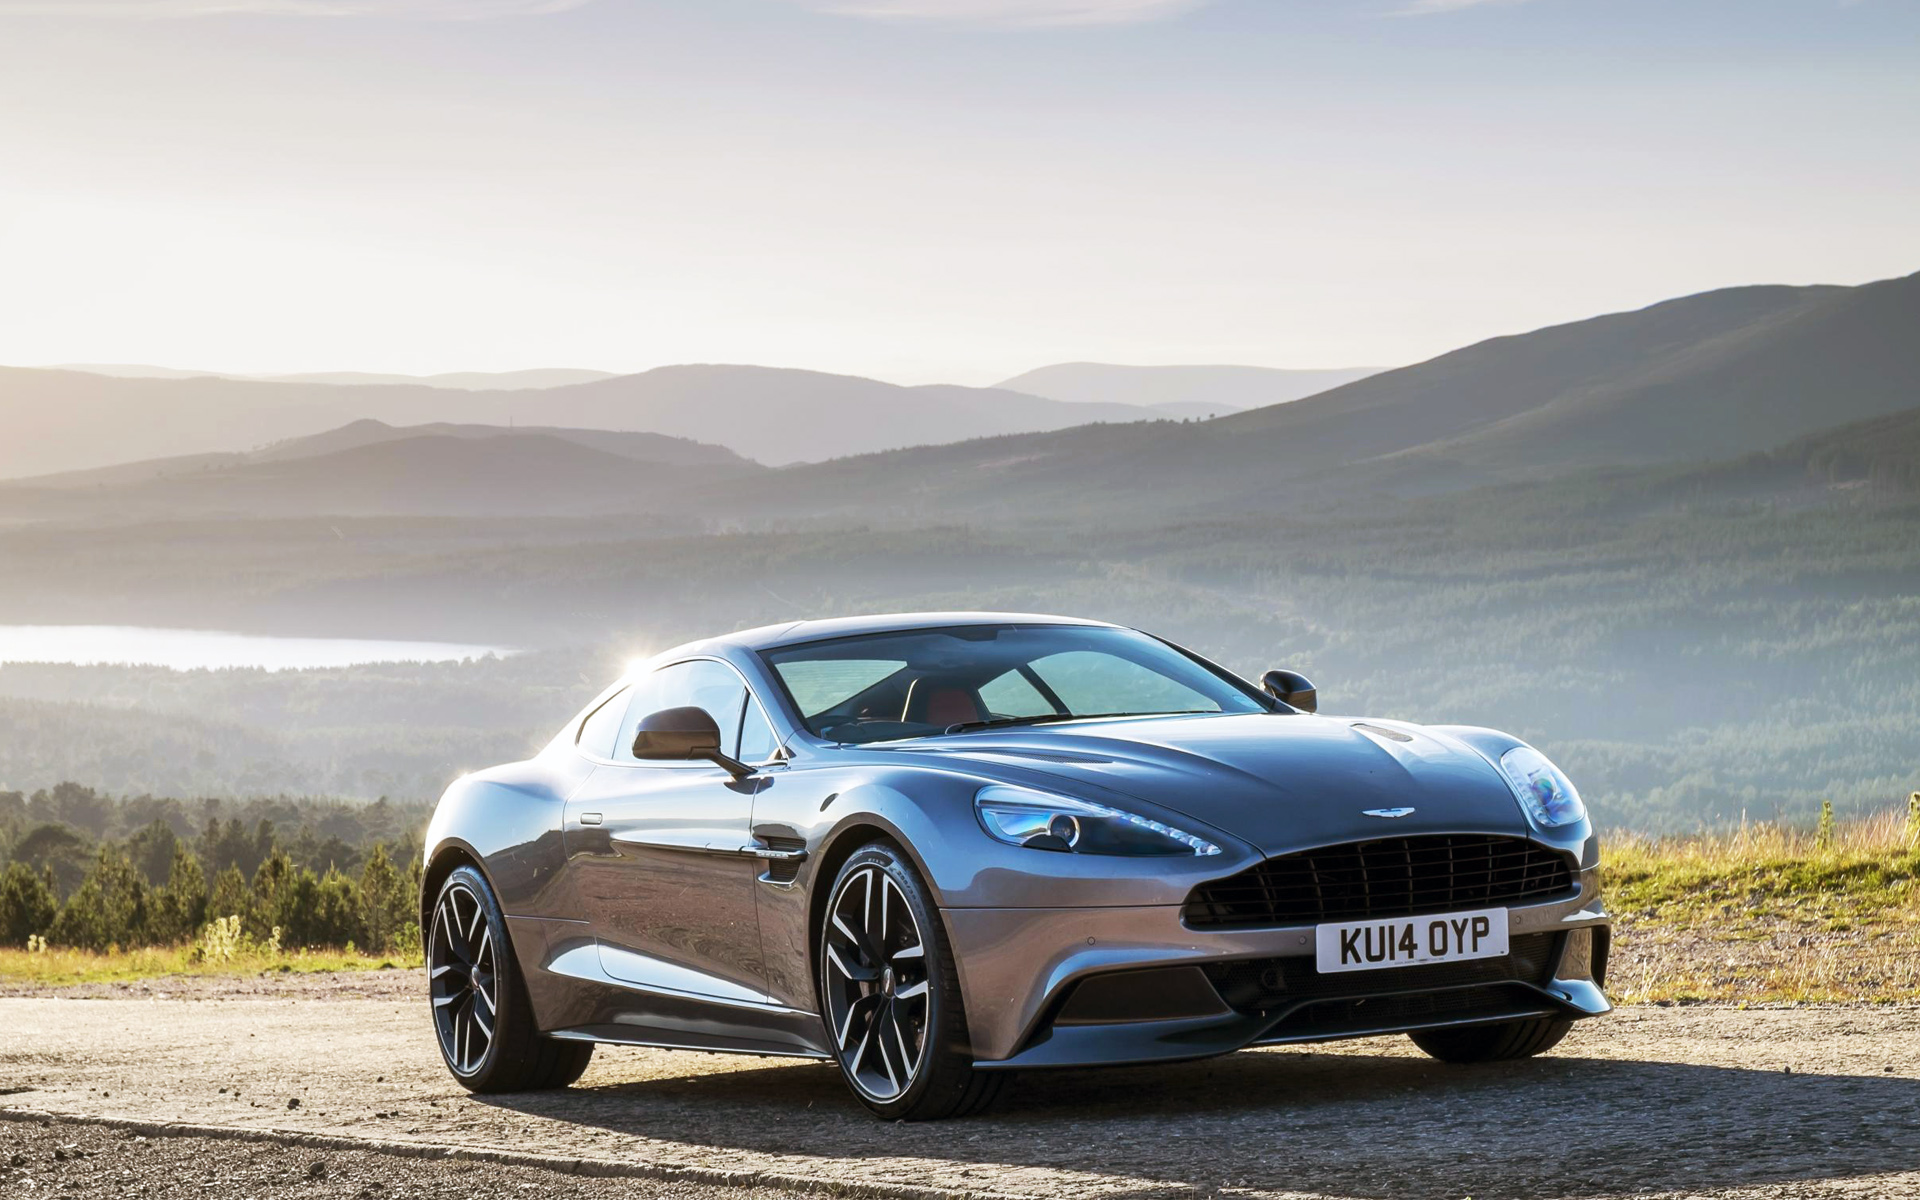 2015 Aston Martin Vanquish Wallpaper HD Car Wallpapers 1920x1200